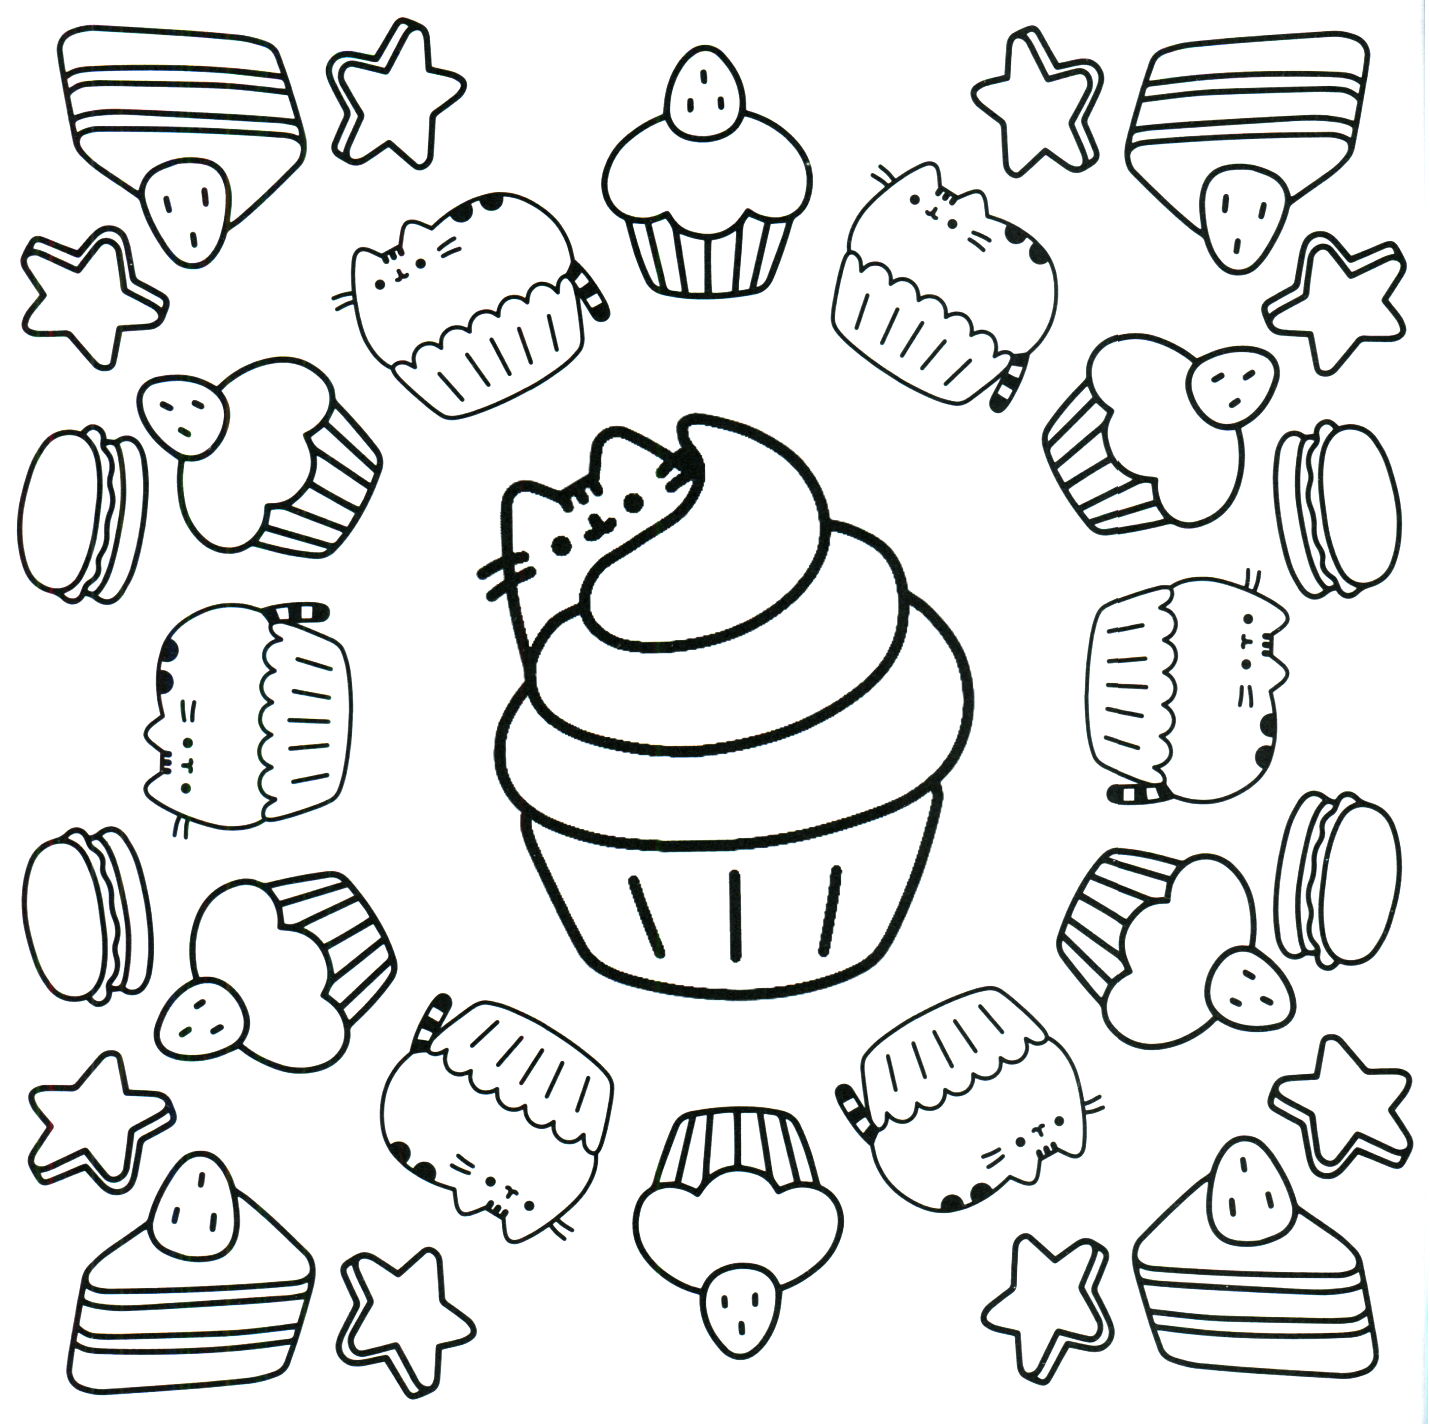 Pusheen Coloring Pages To Print Pictures To Pin On